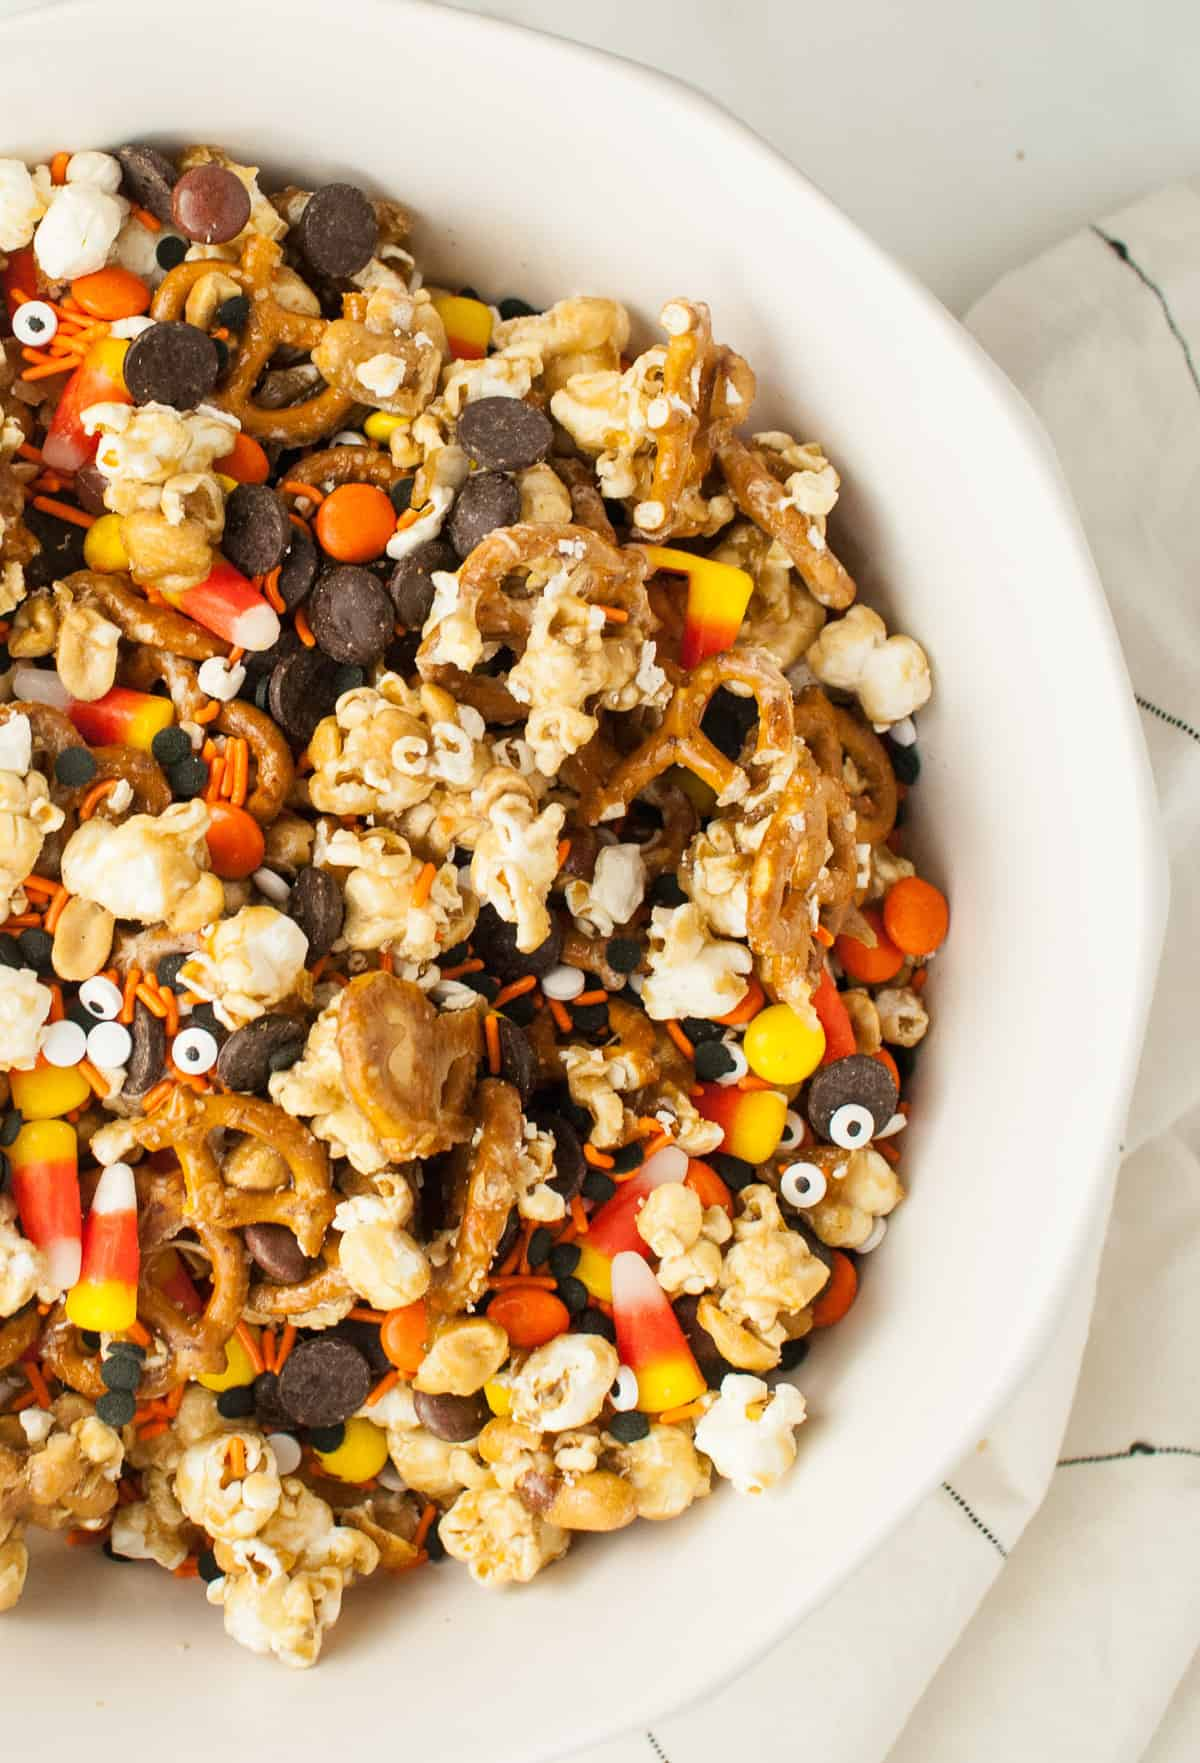 A large white bowl filled with Halloween snack mix.